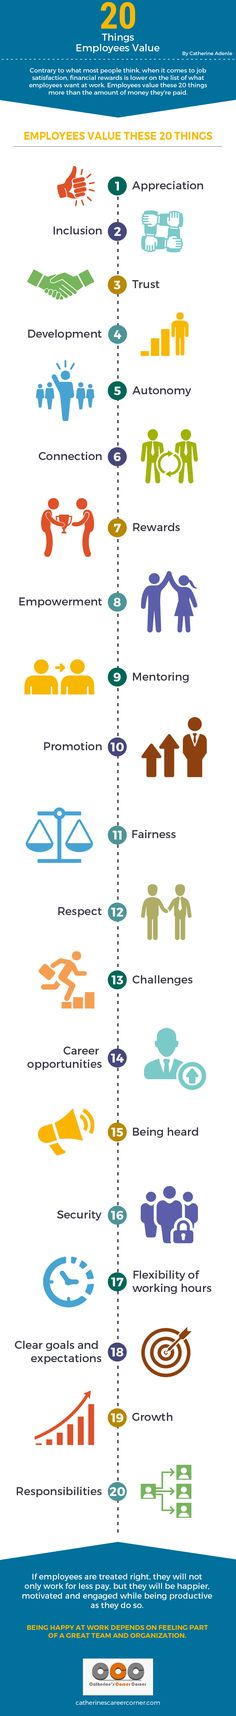 20 Things Employees Value (Infographic) via @catherineadenle